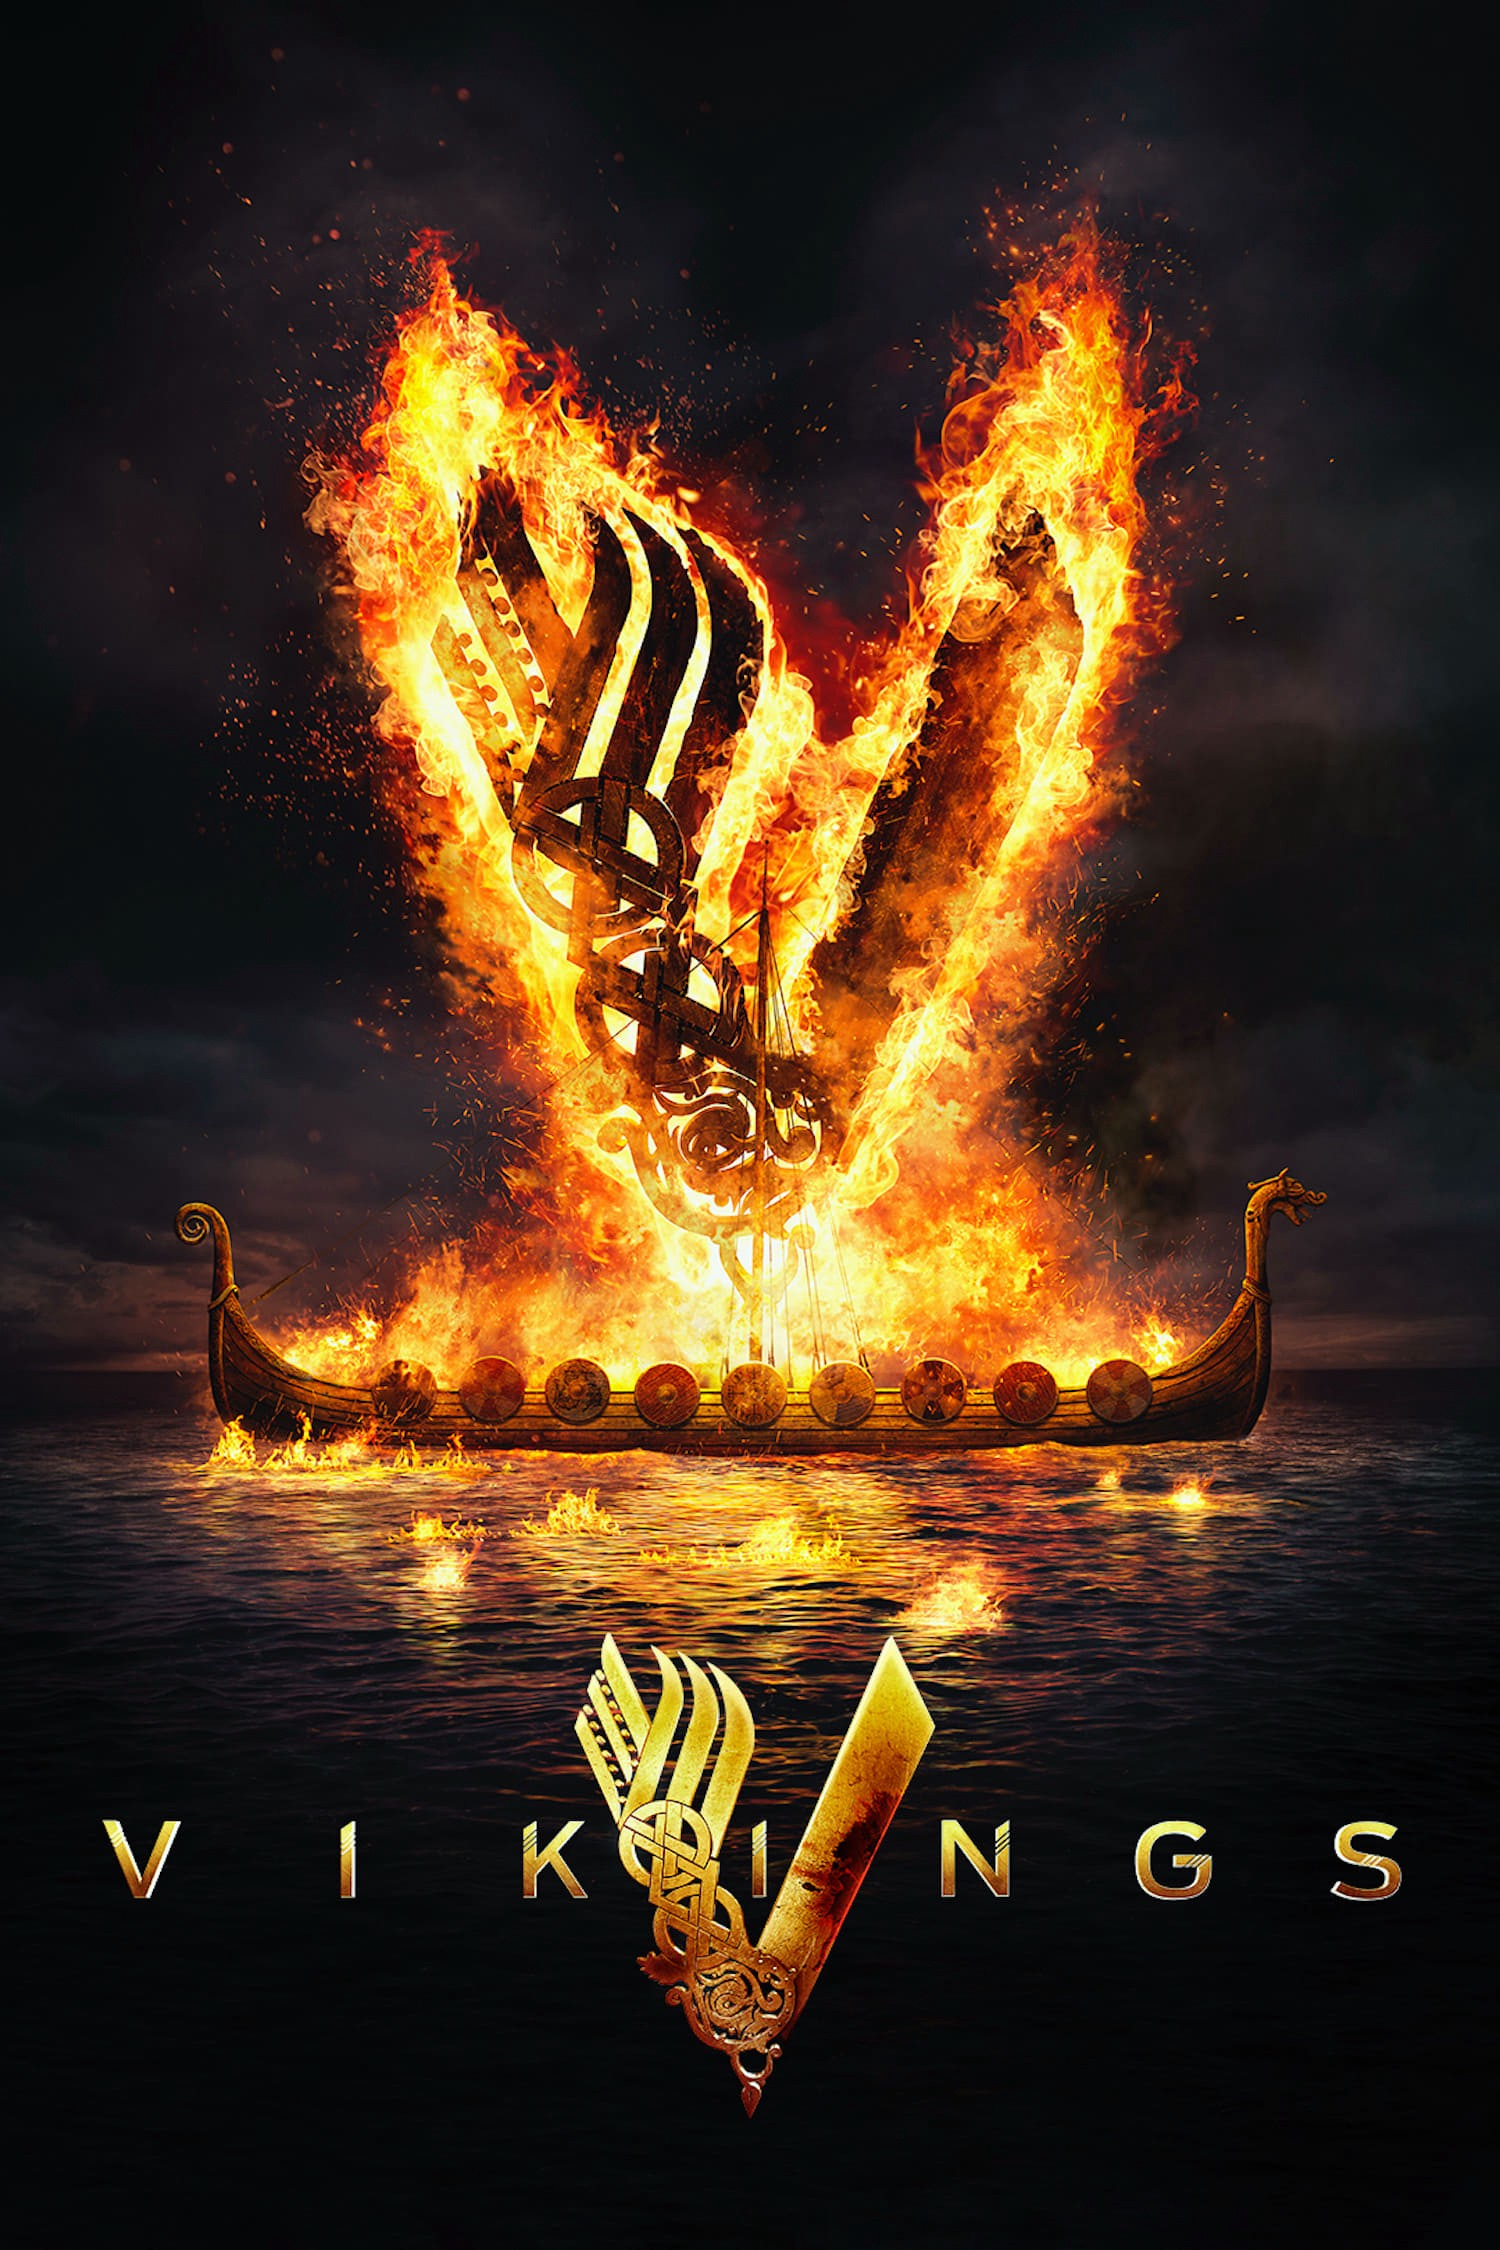 Murder Saison 6 Episode 1 Streaming : murder, saison, episode, streaming, S6,E11, Vikings,